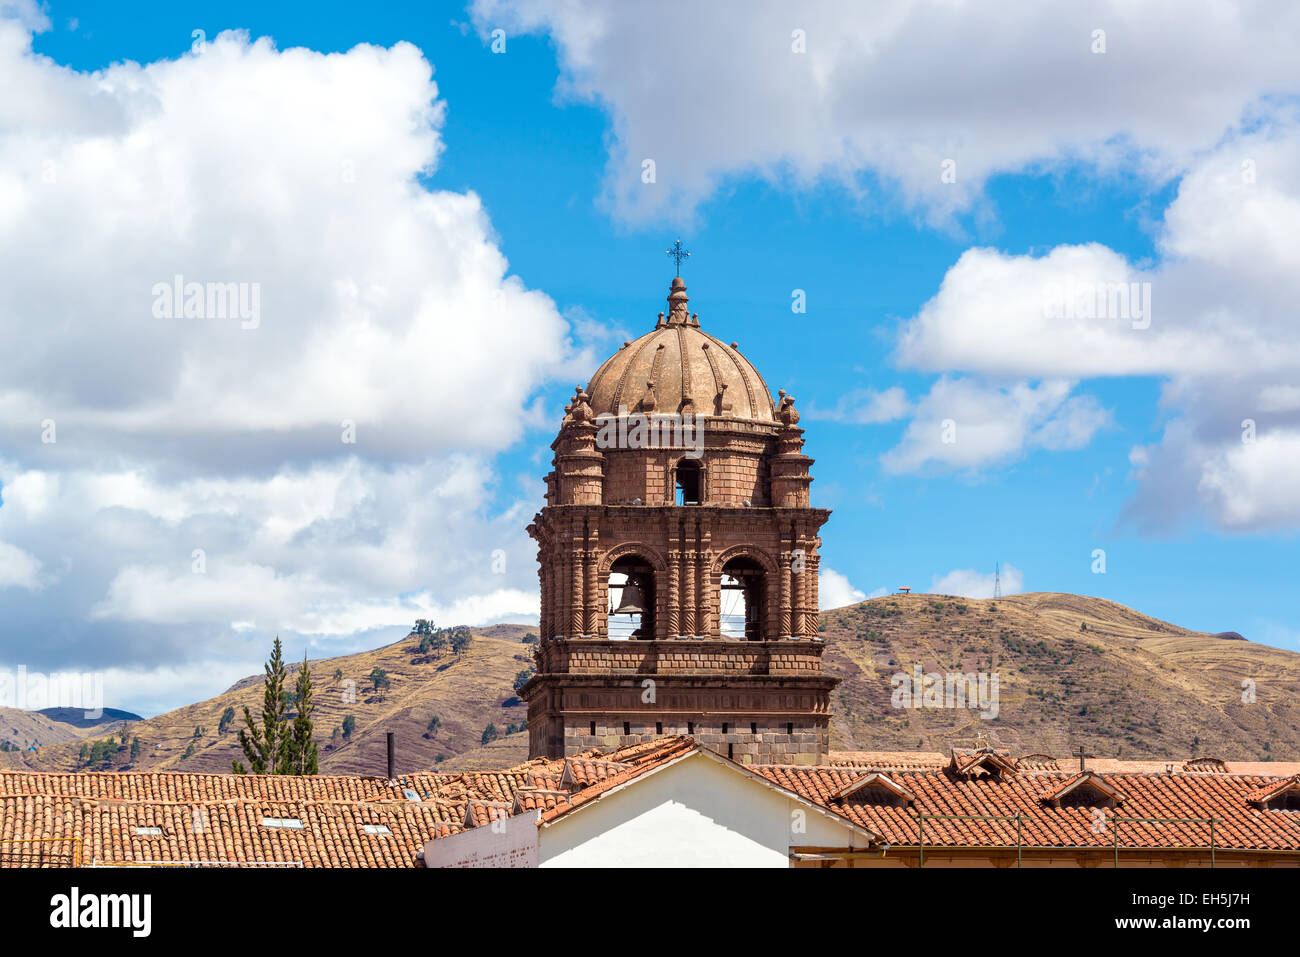 View of the tower of Santo Domingo church in Cuzco, Peru - Stock Image